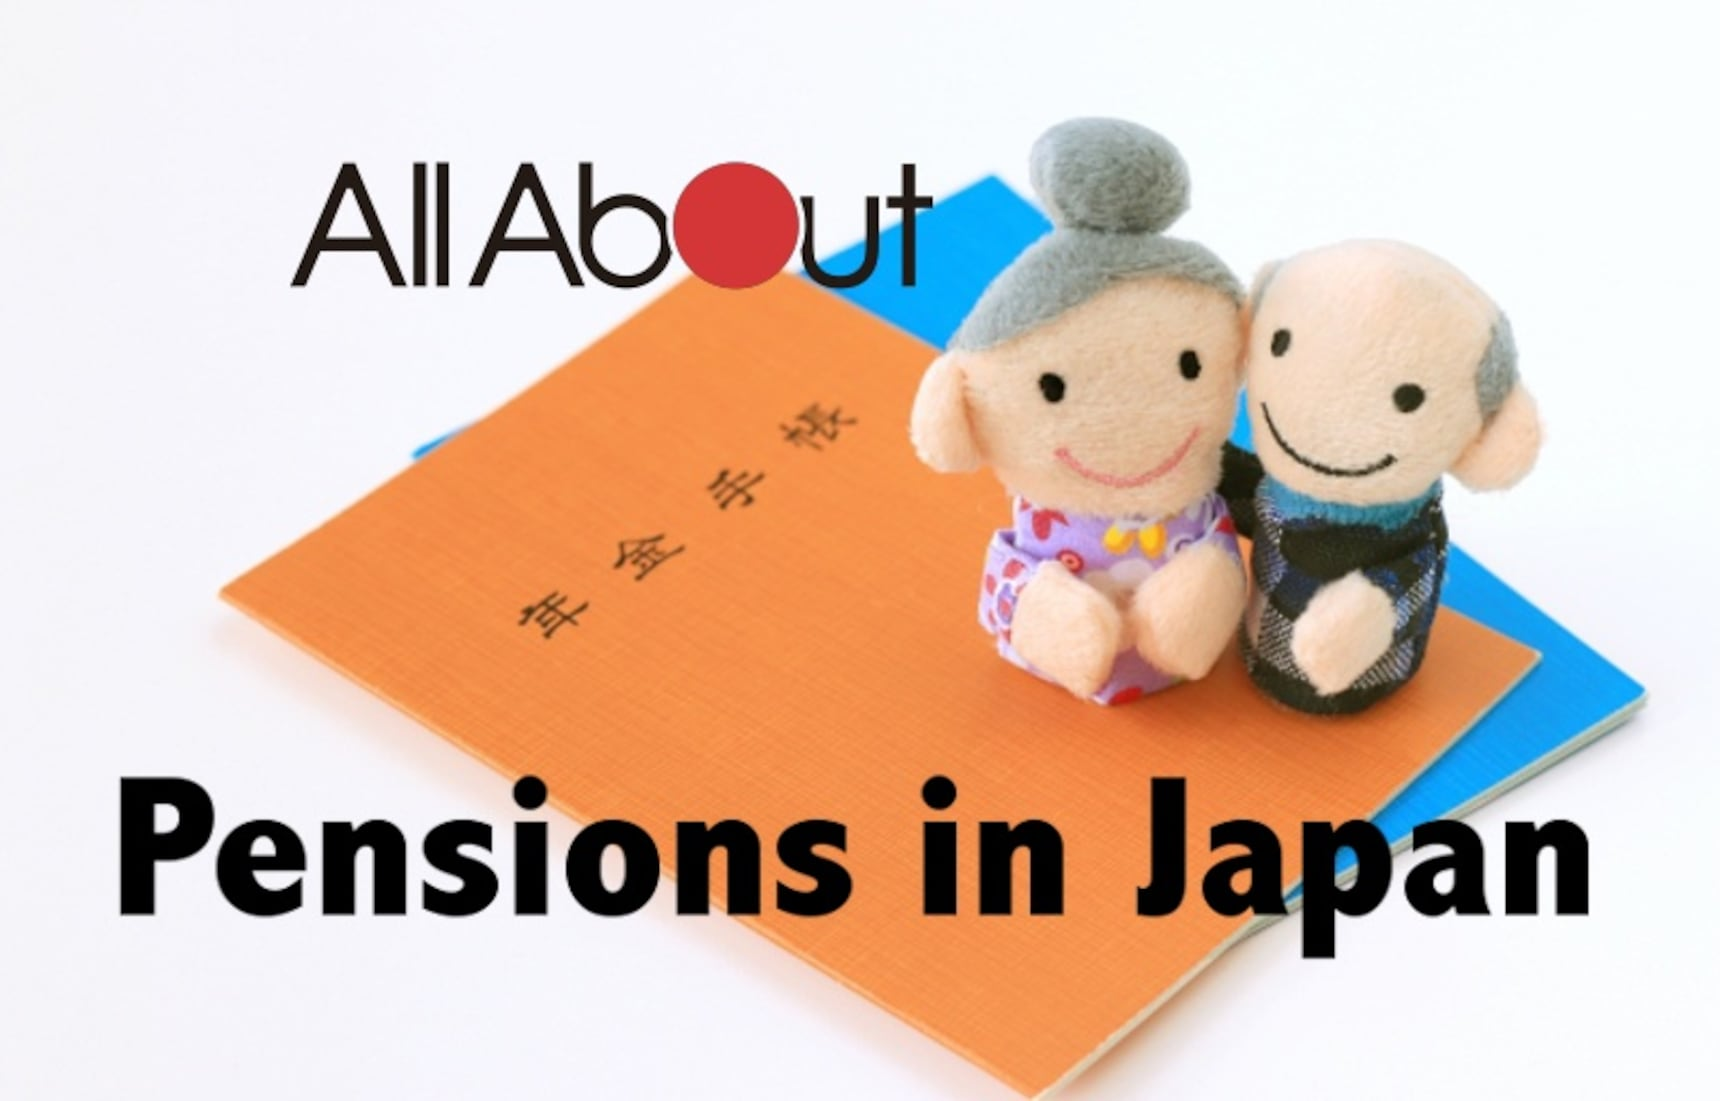 All About Pensions in Japan